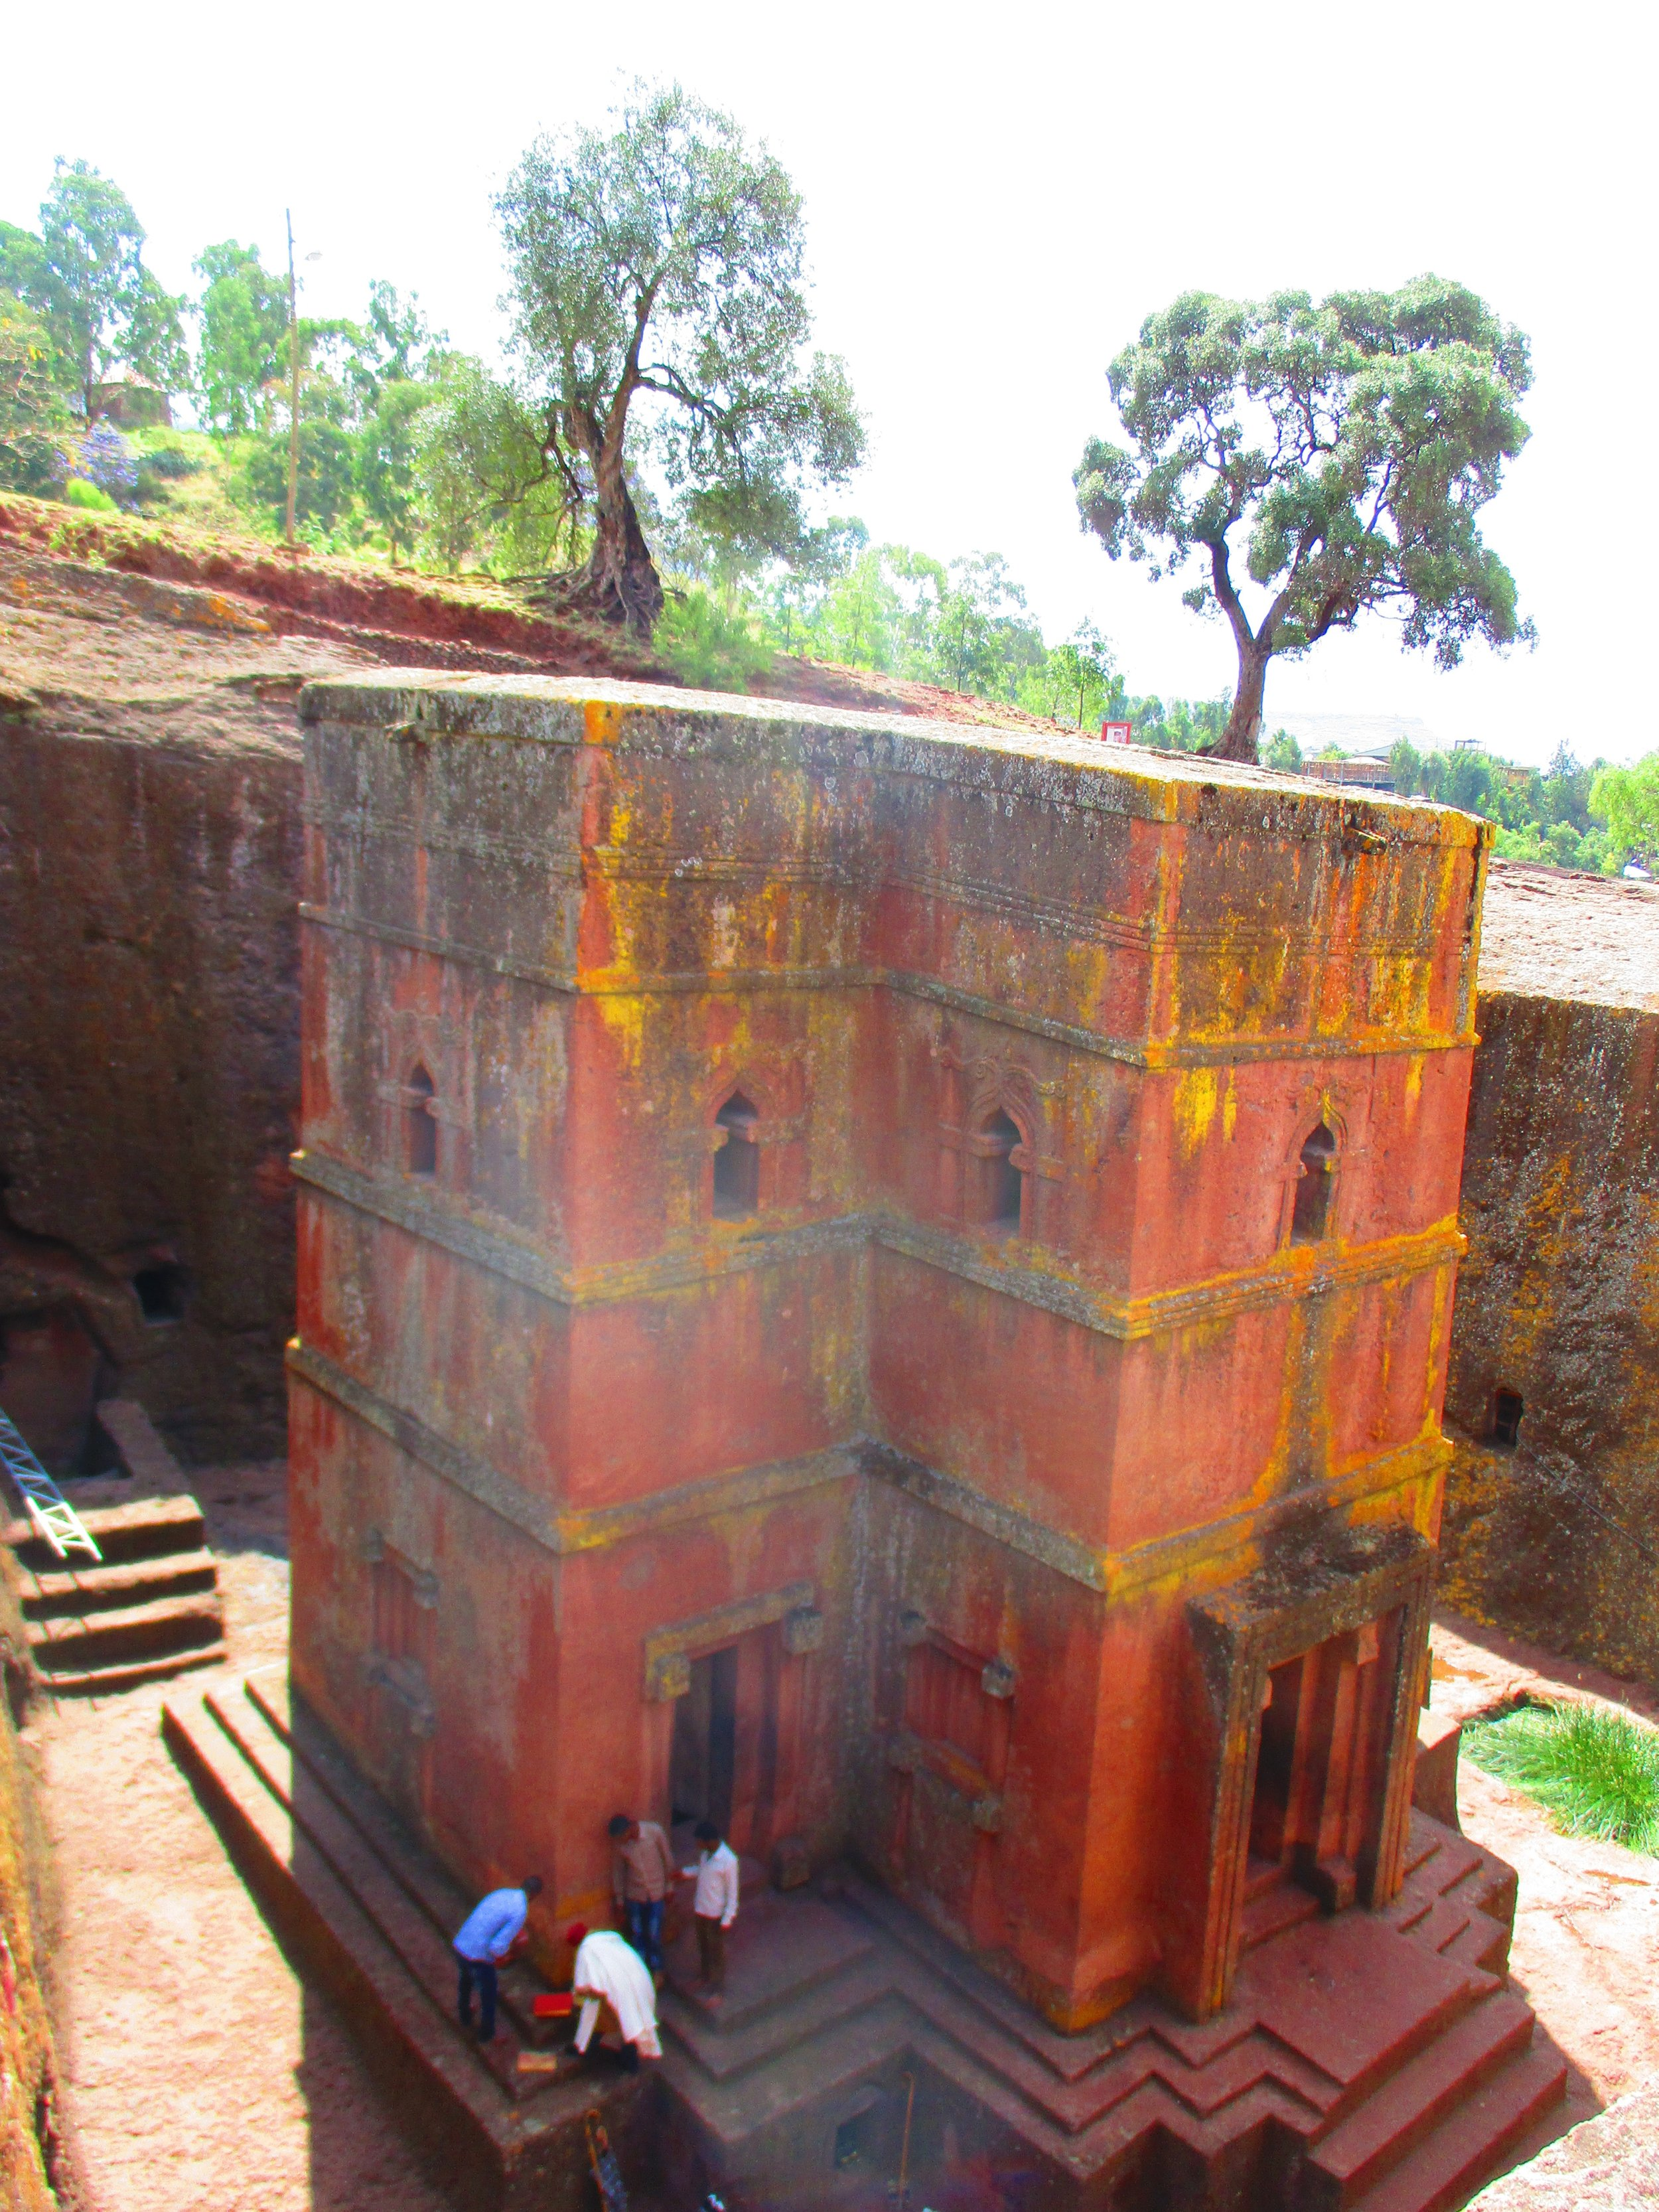 The Church of St George Church / Bete Giyorgis, carved out of the mountain.